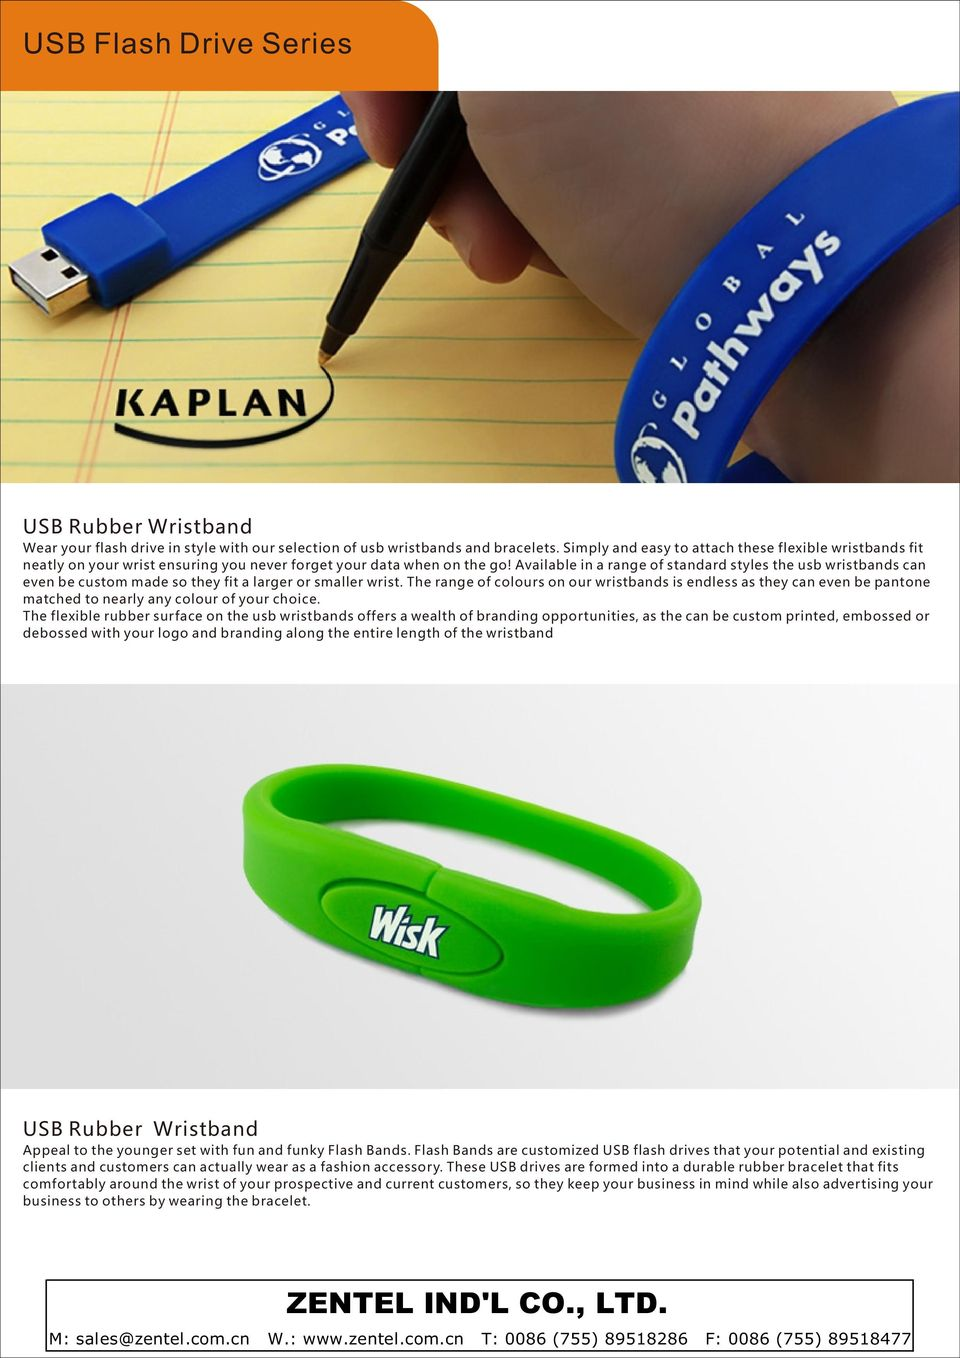 Available in a range of standard styles the usb wristbands can even be custom made so they fit a larger or smaller wrist.